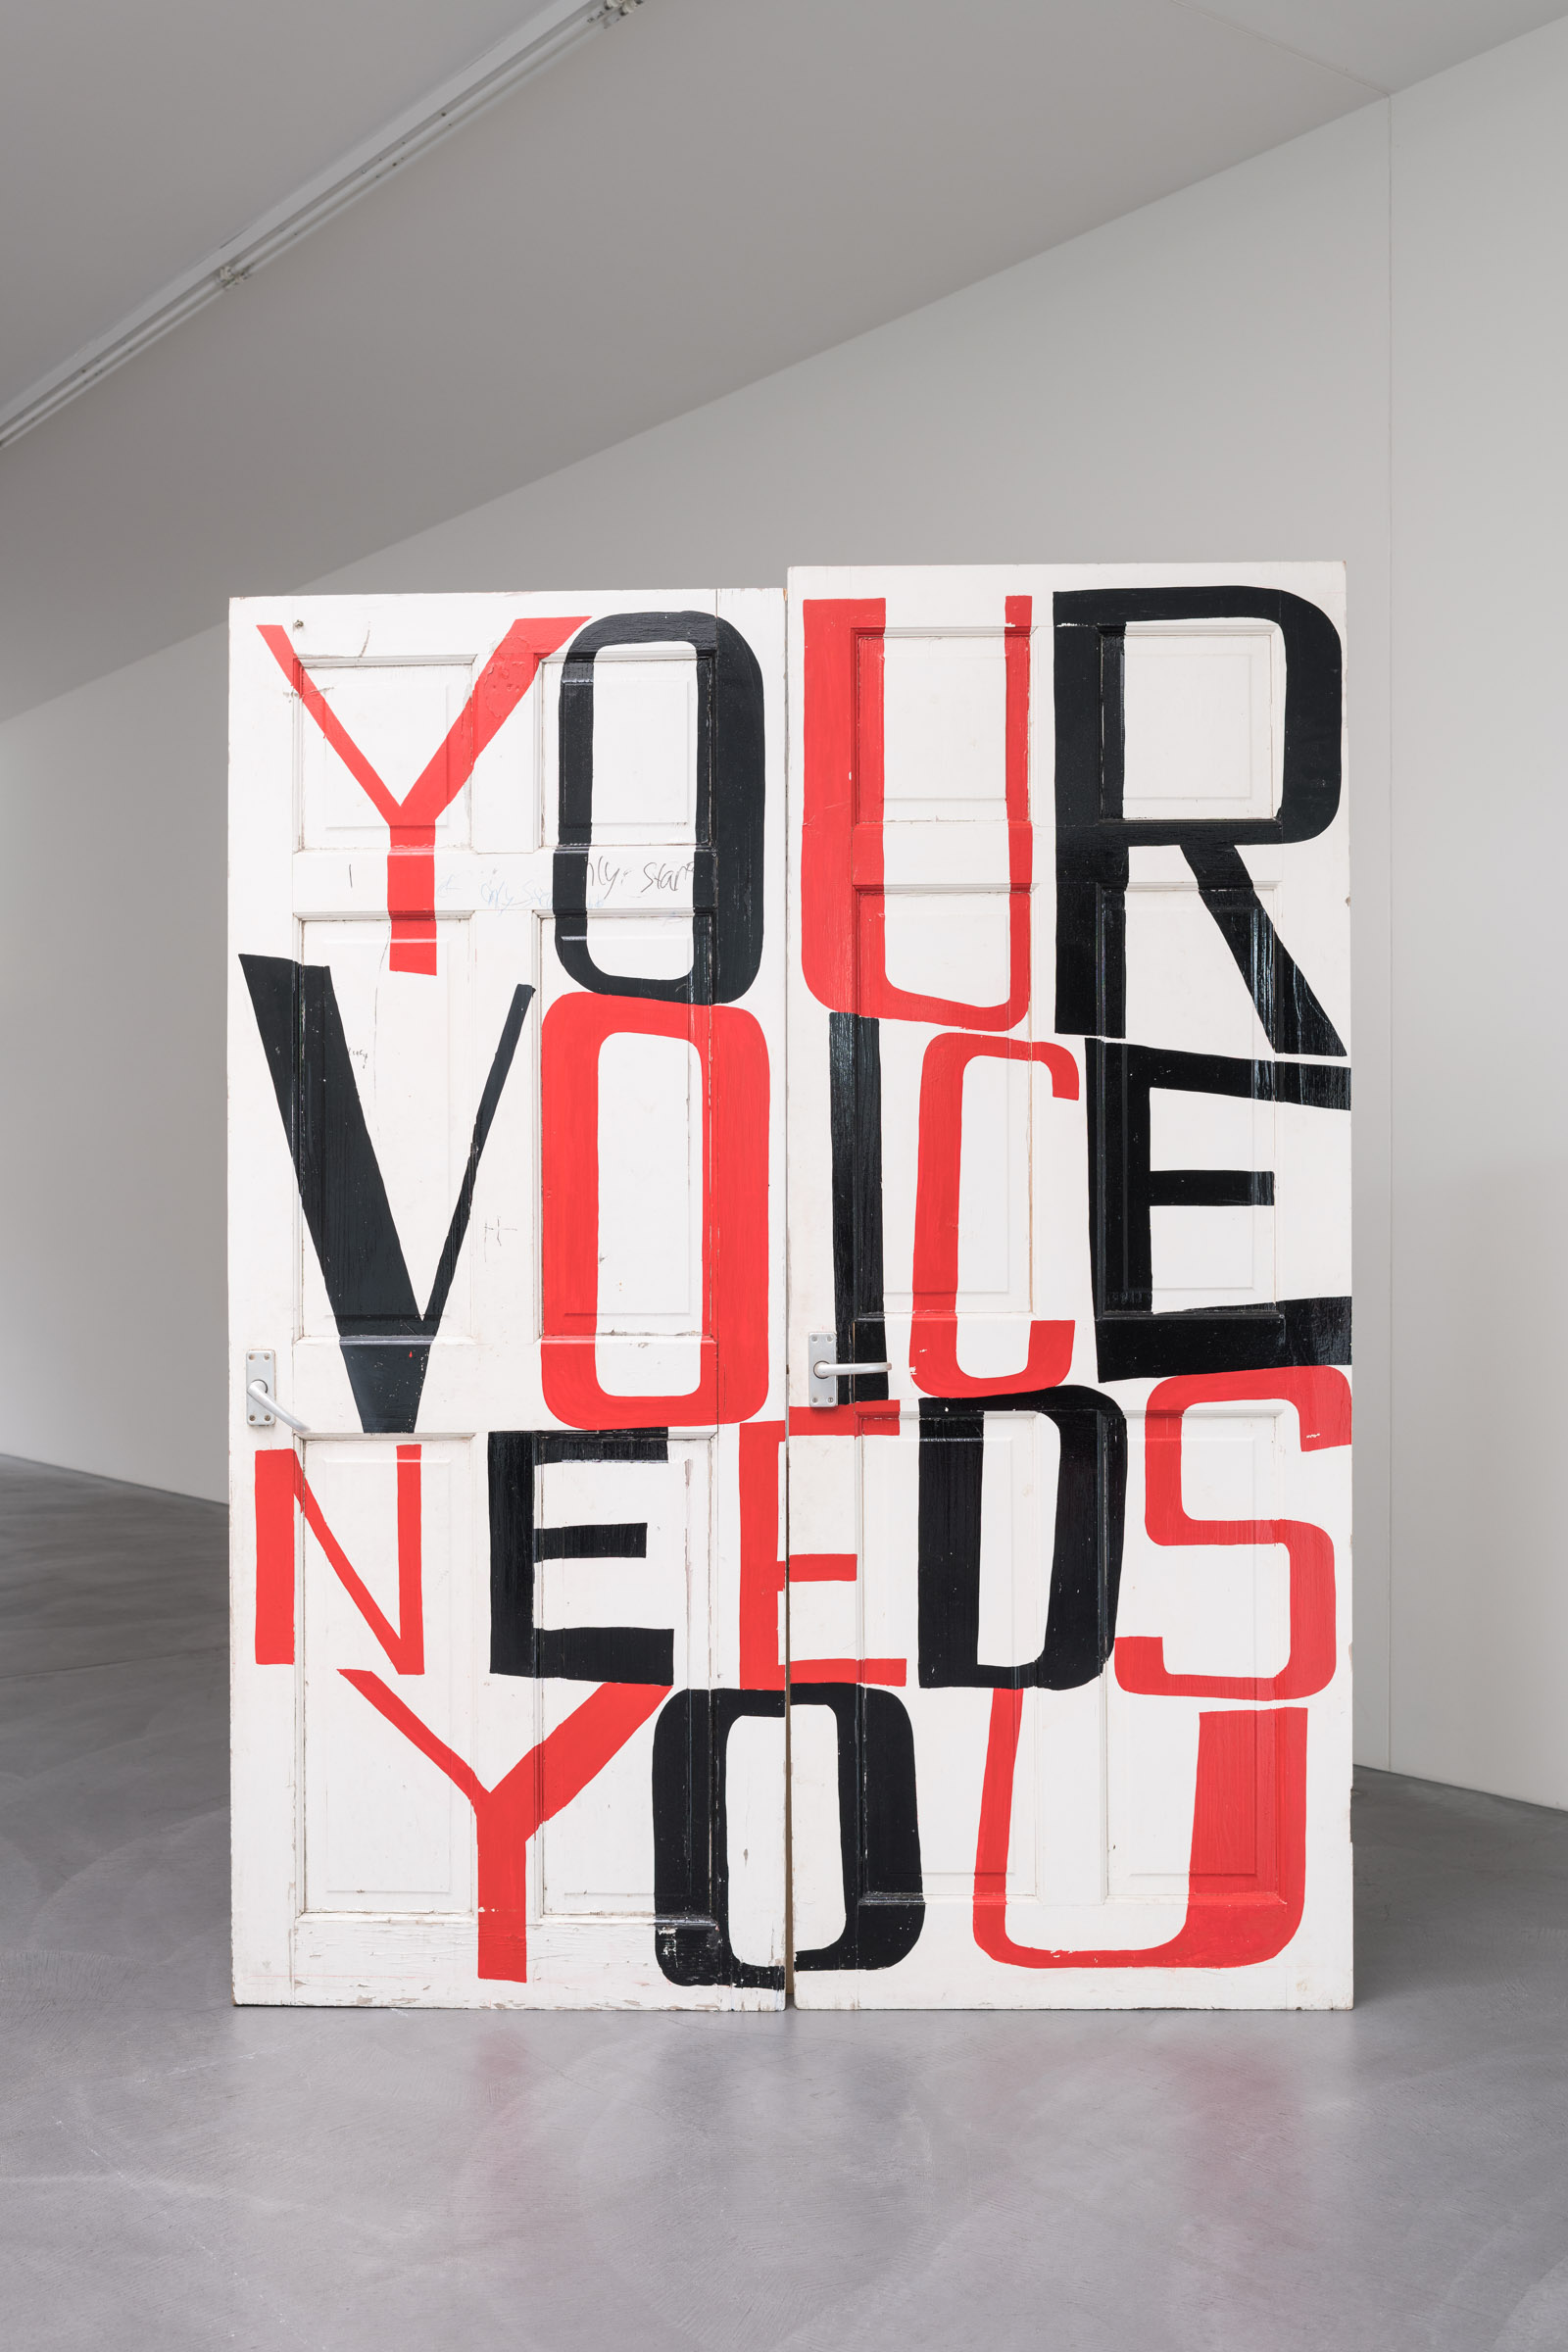 Artwork by Bob & Roberta Smith